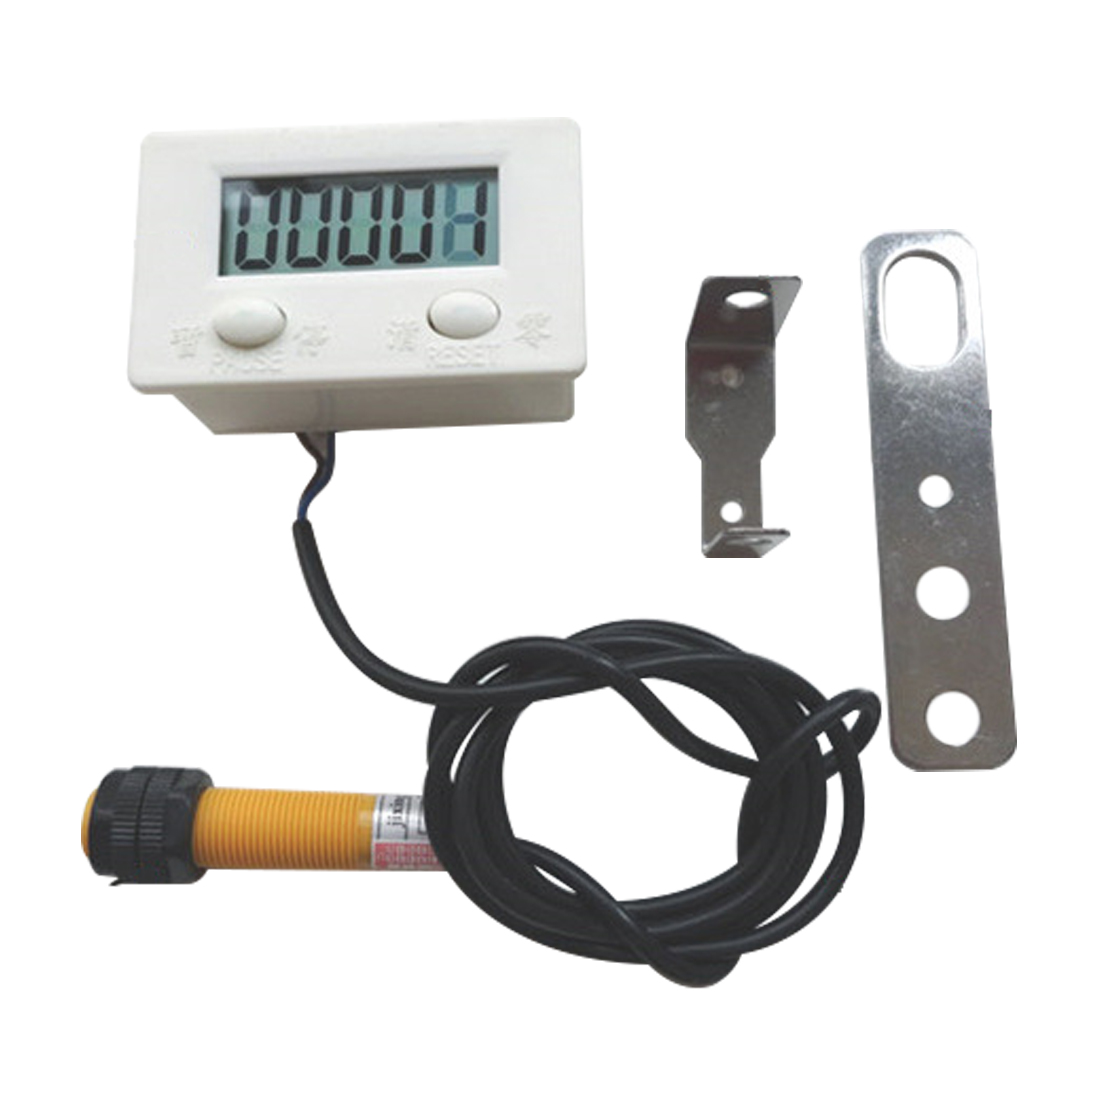 Hot P11-5A LCD Digital Display Electronic Counter Punch Magnetic Induction Proximity Switch Reciprocating Rotary Counter seismic design of electronic counter punch rotating magnetic inductive proximity switches